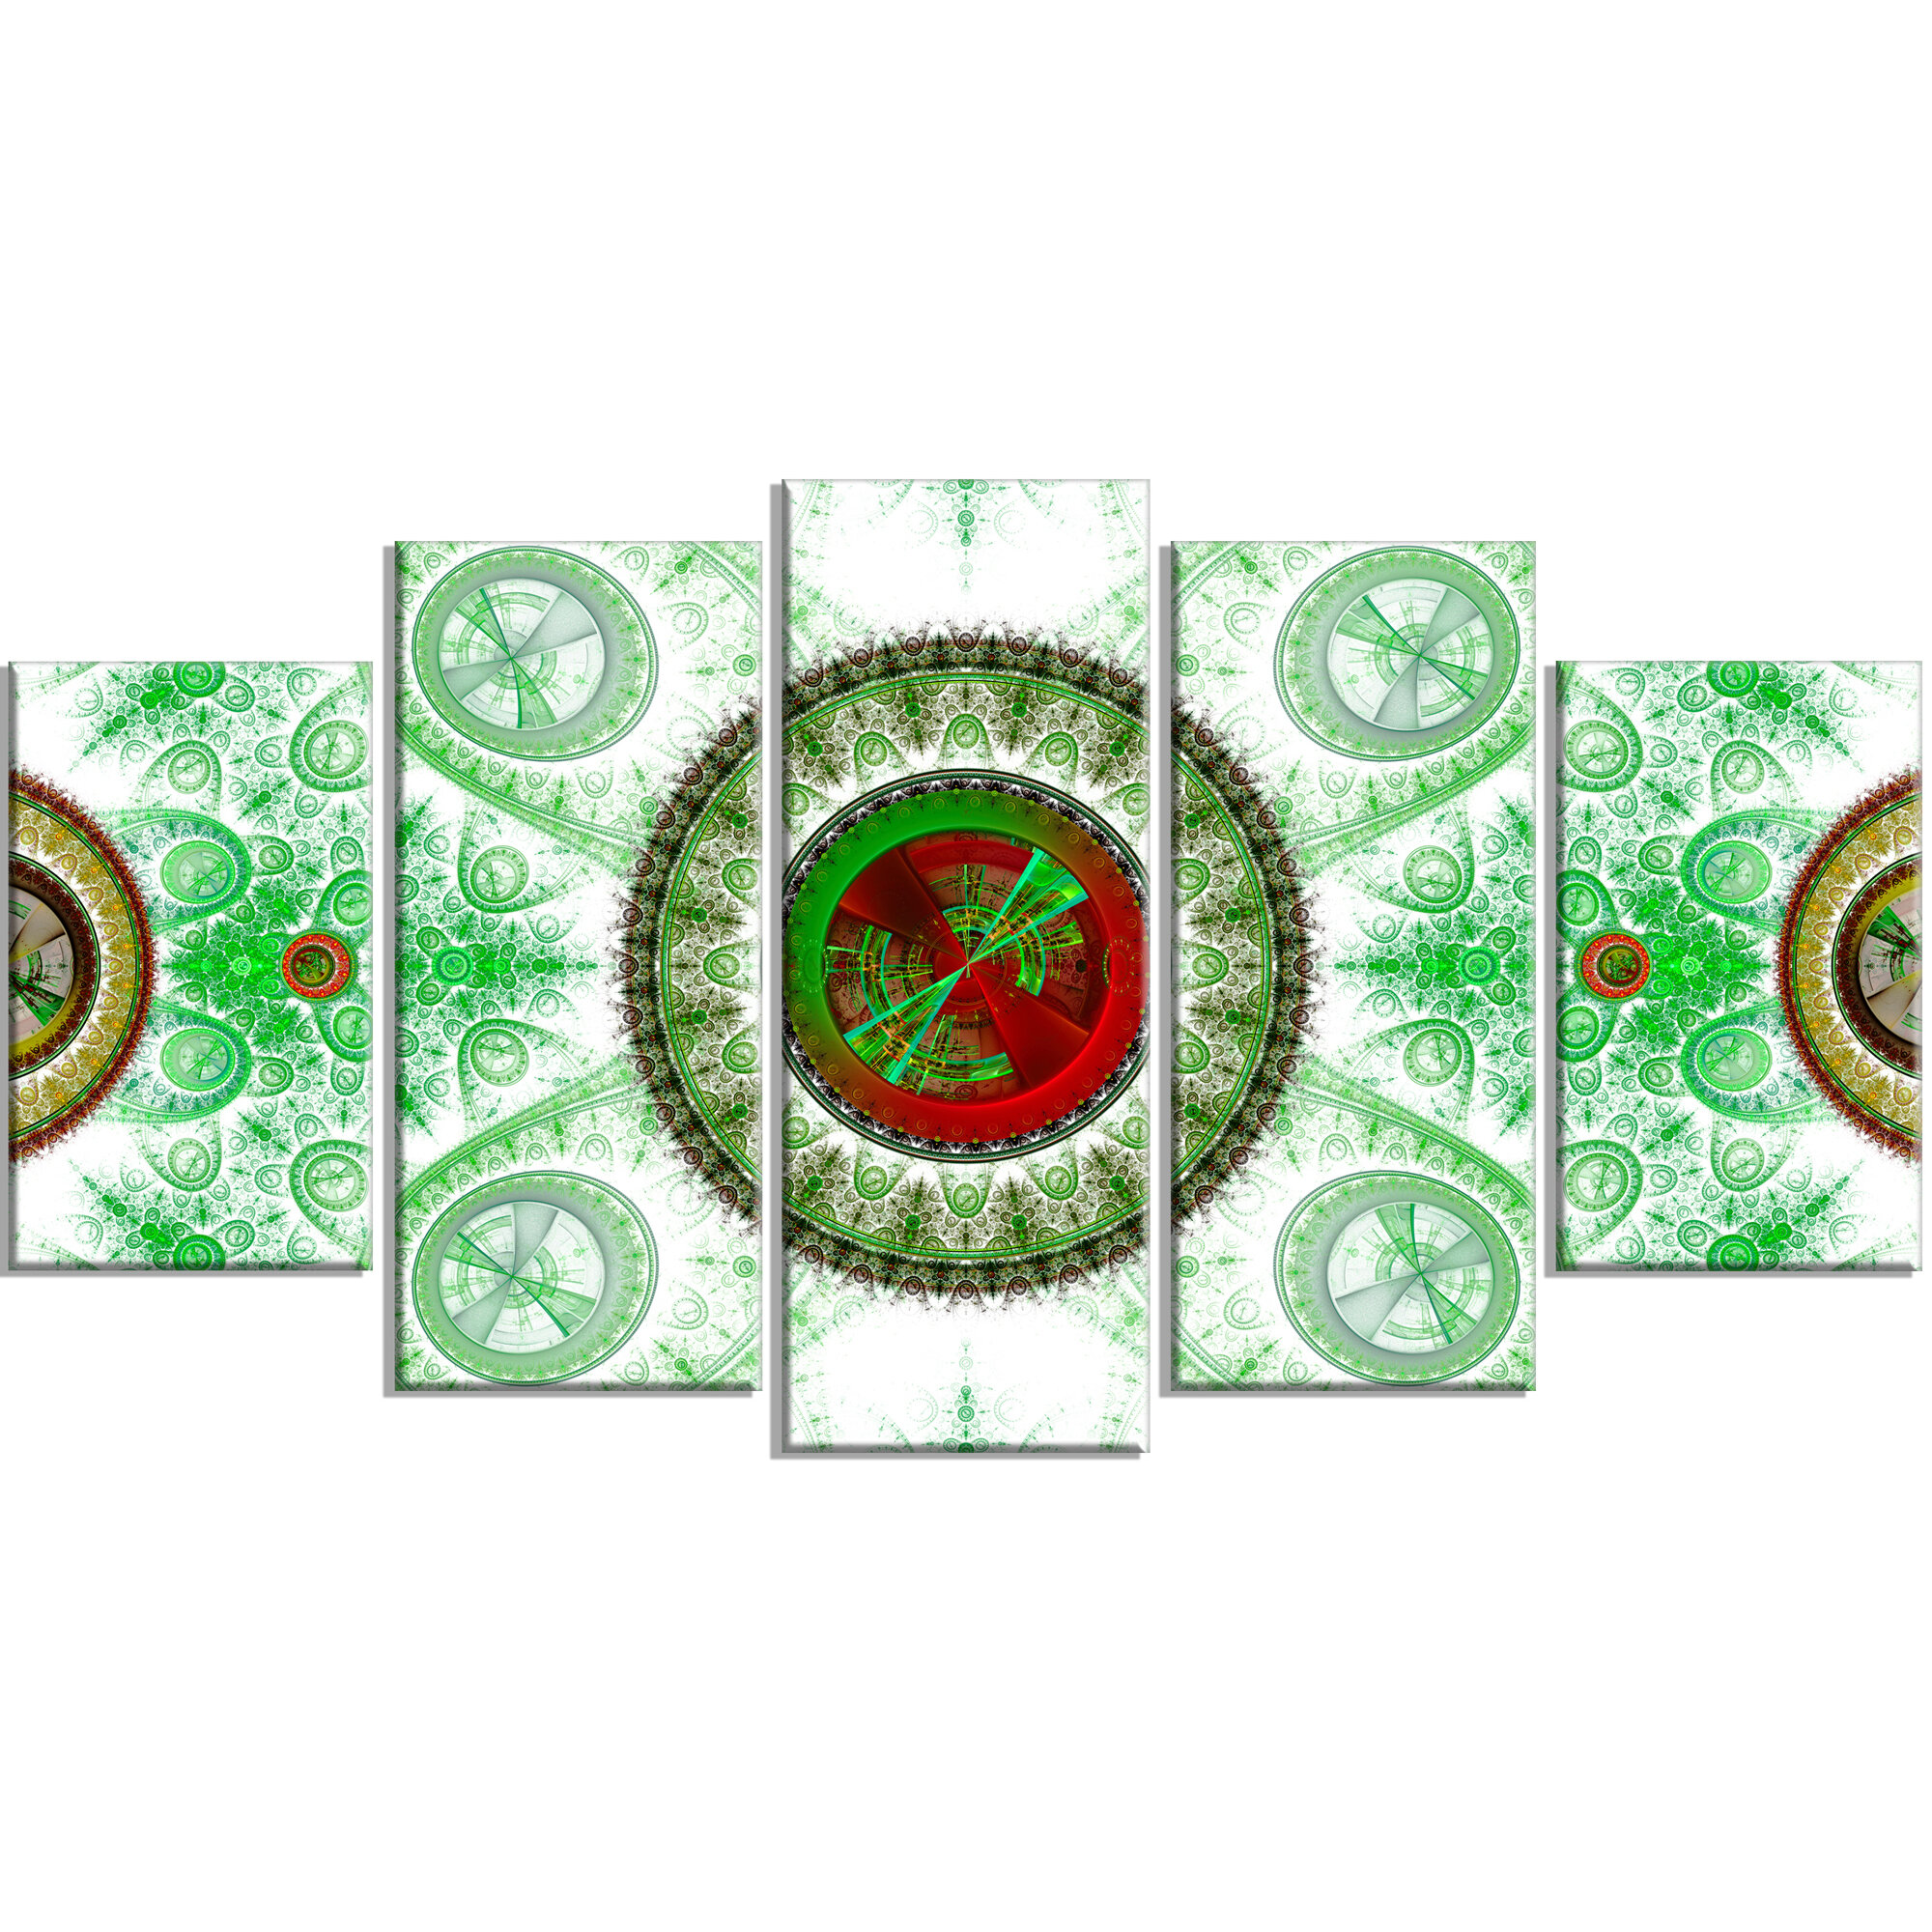 'Light Green Psychedelic Relaxing Art' Graphic Art Print Multi-Piece Image  on Canvas